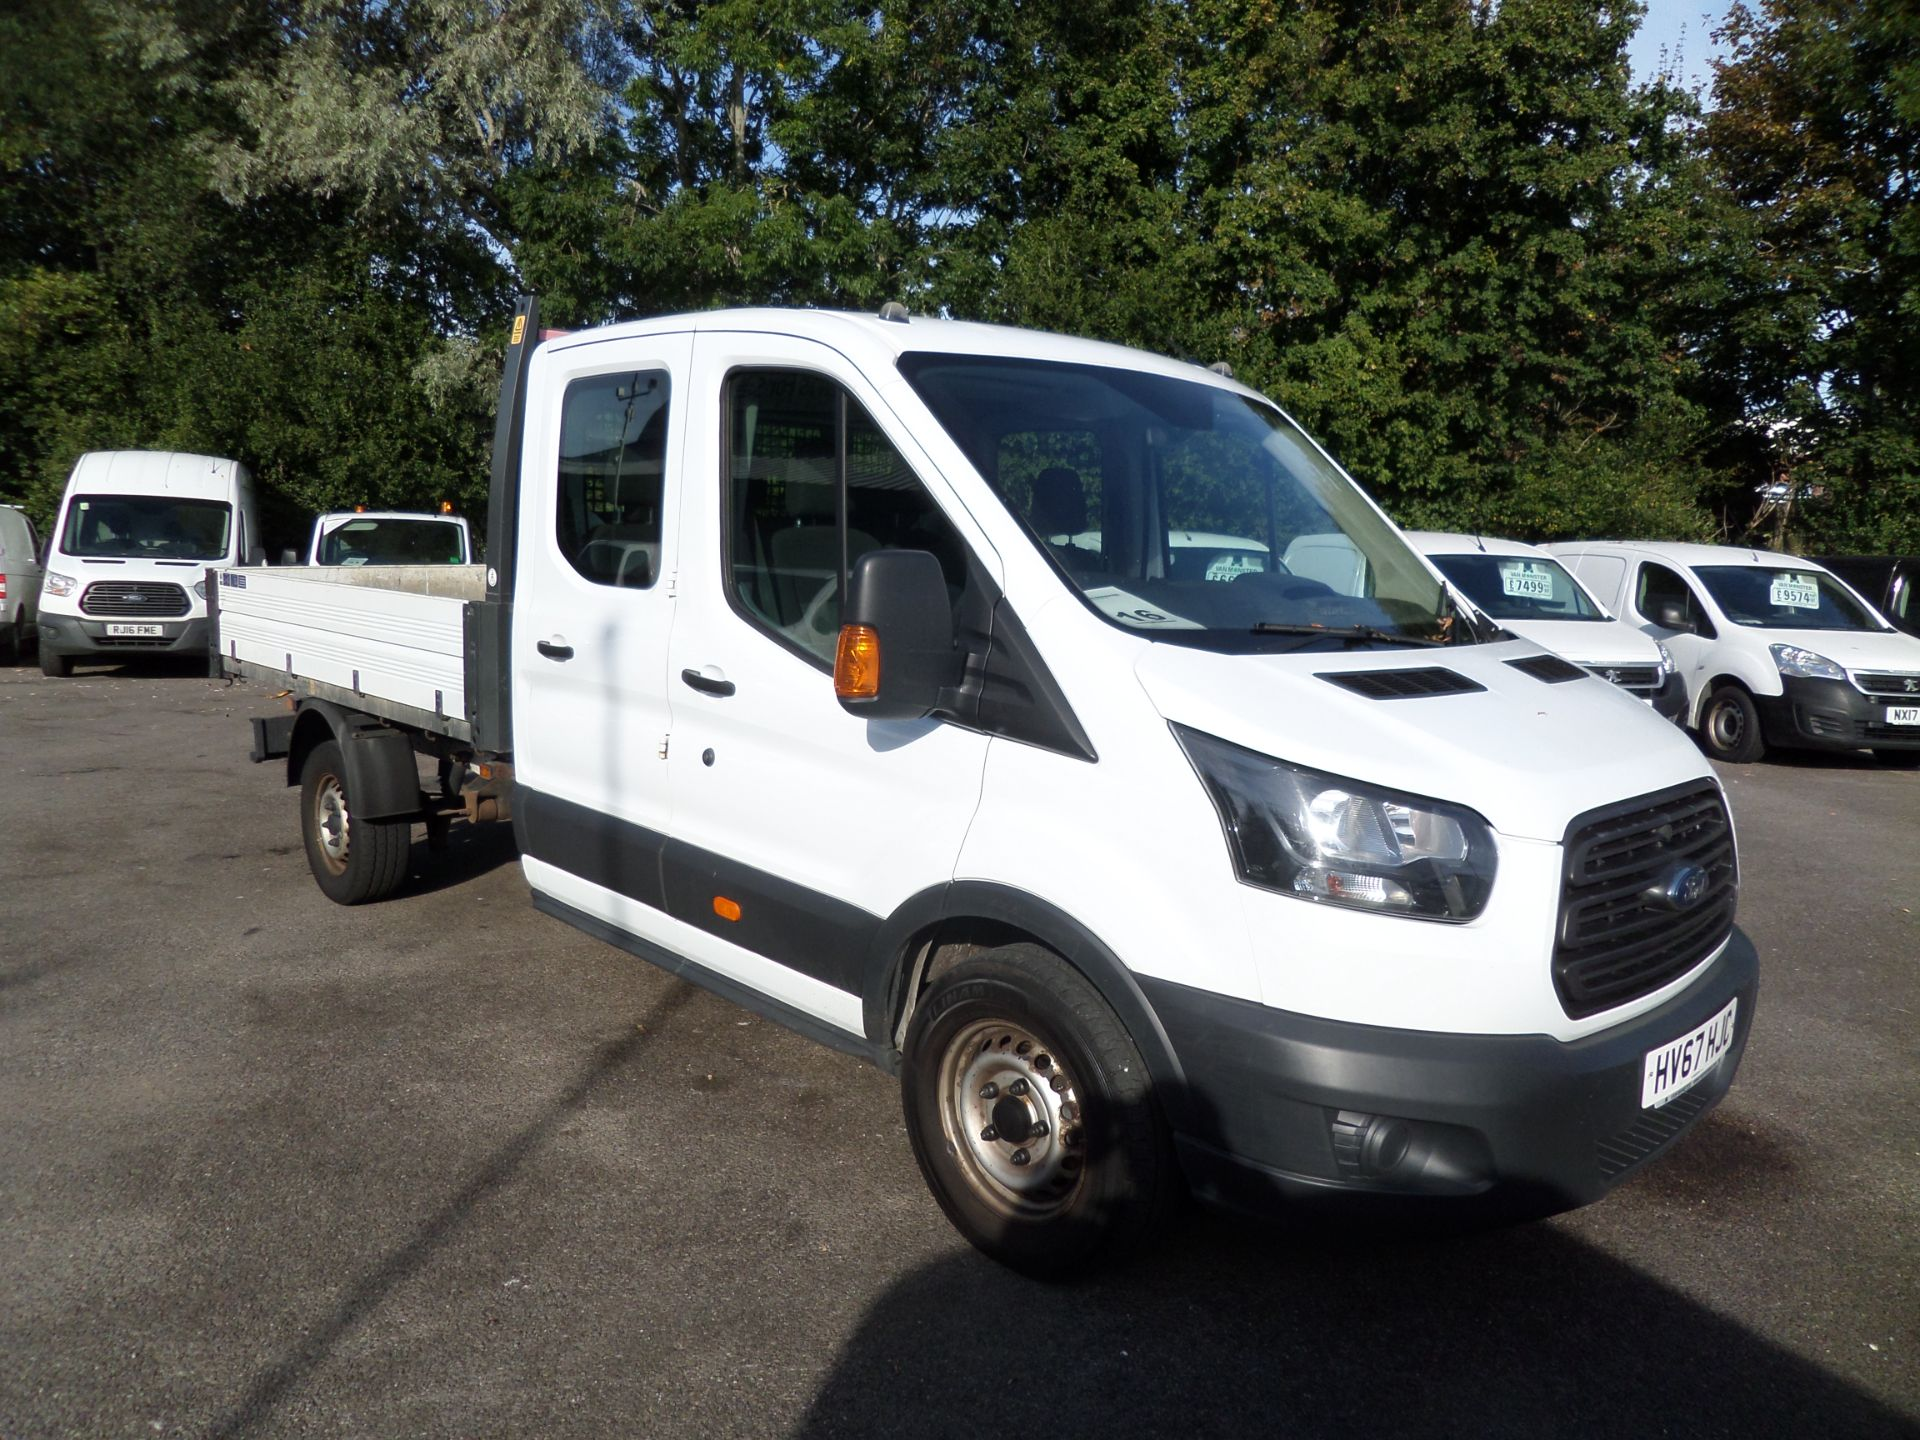 2017 Ford Transit 2.0 Tdci 105Ps H2 Double Cab Tipper Euro 6 (HV67HJC) Image 1